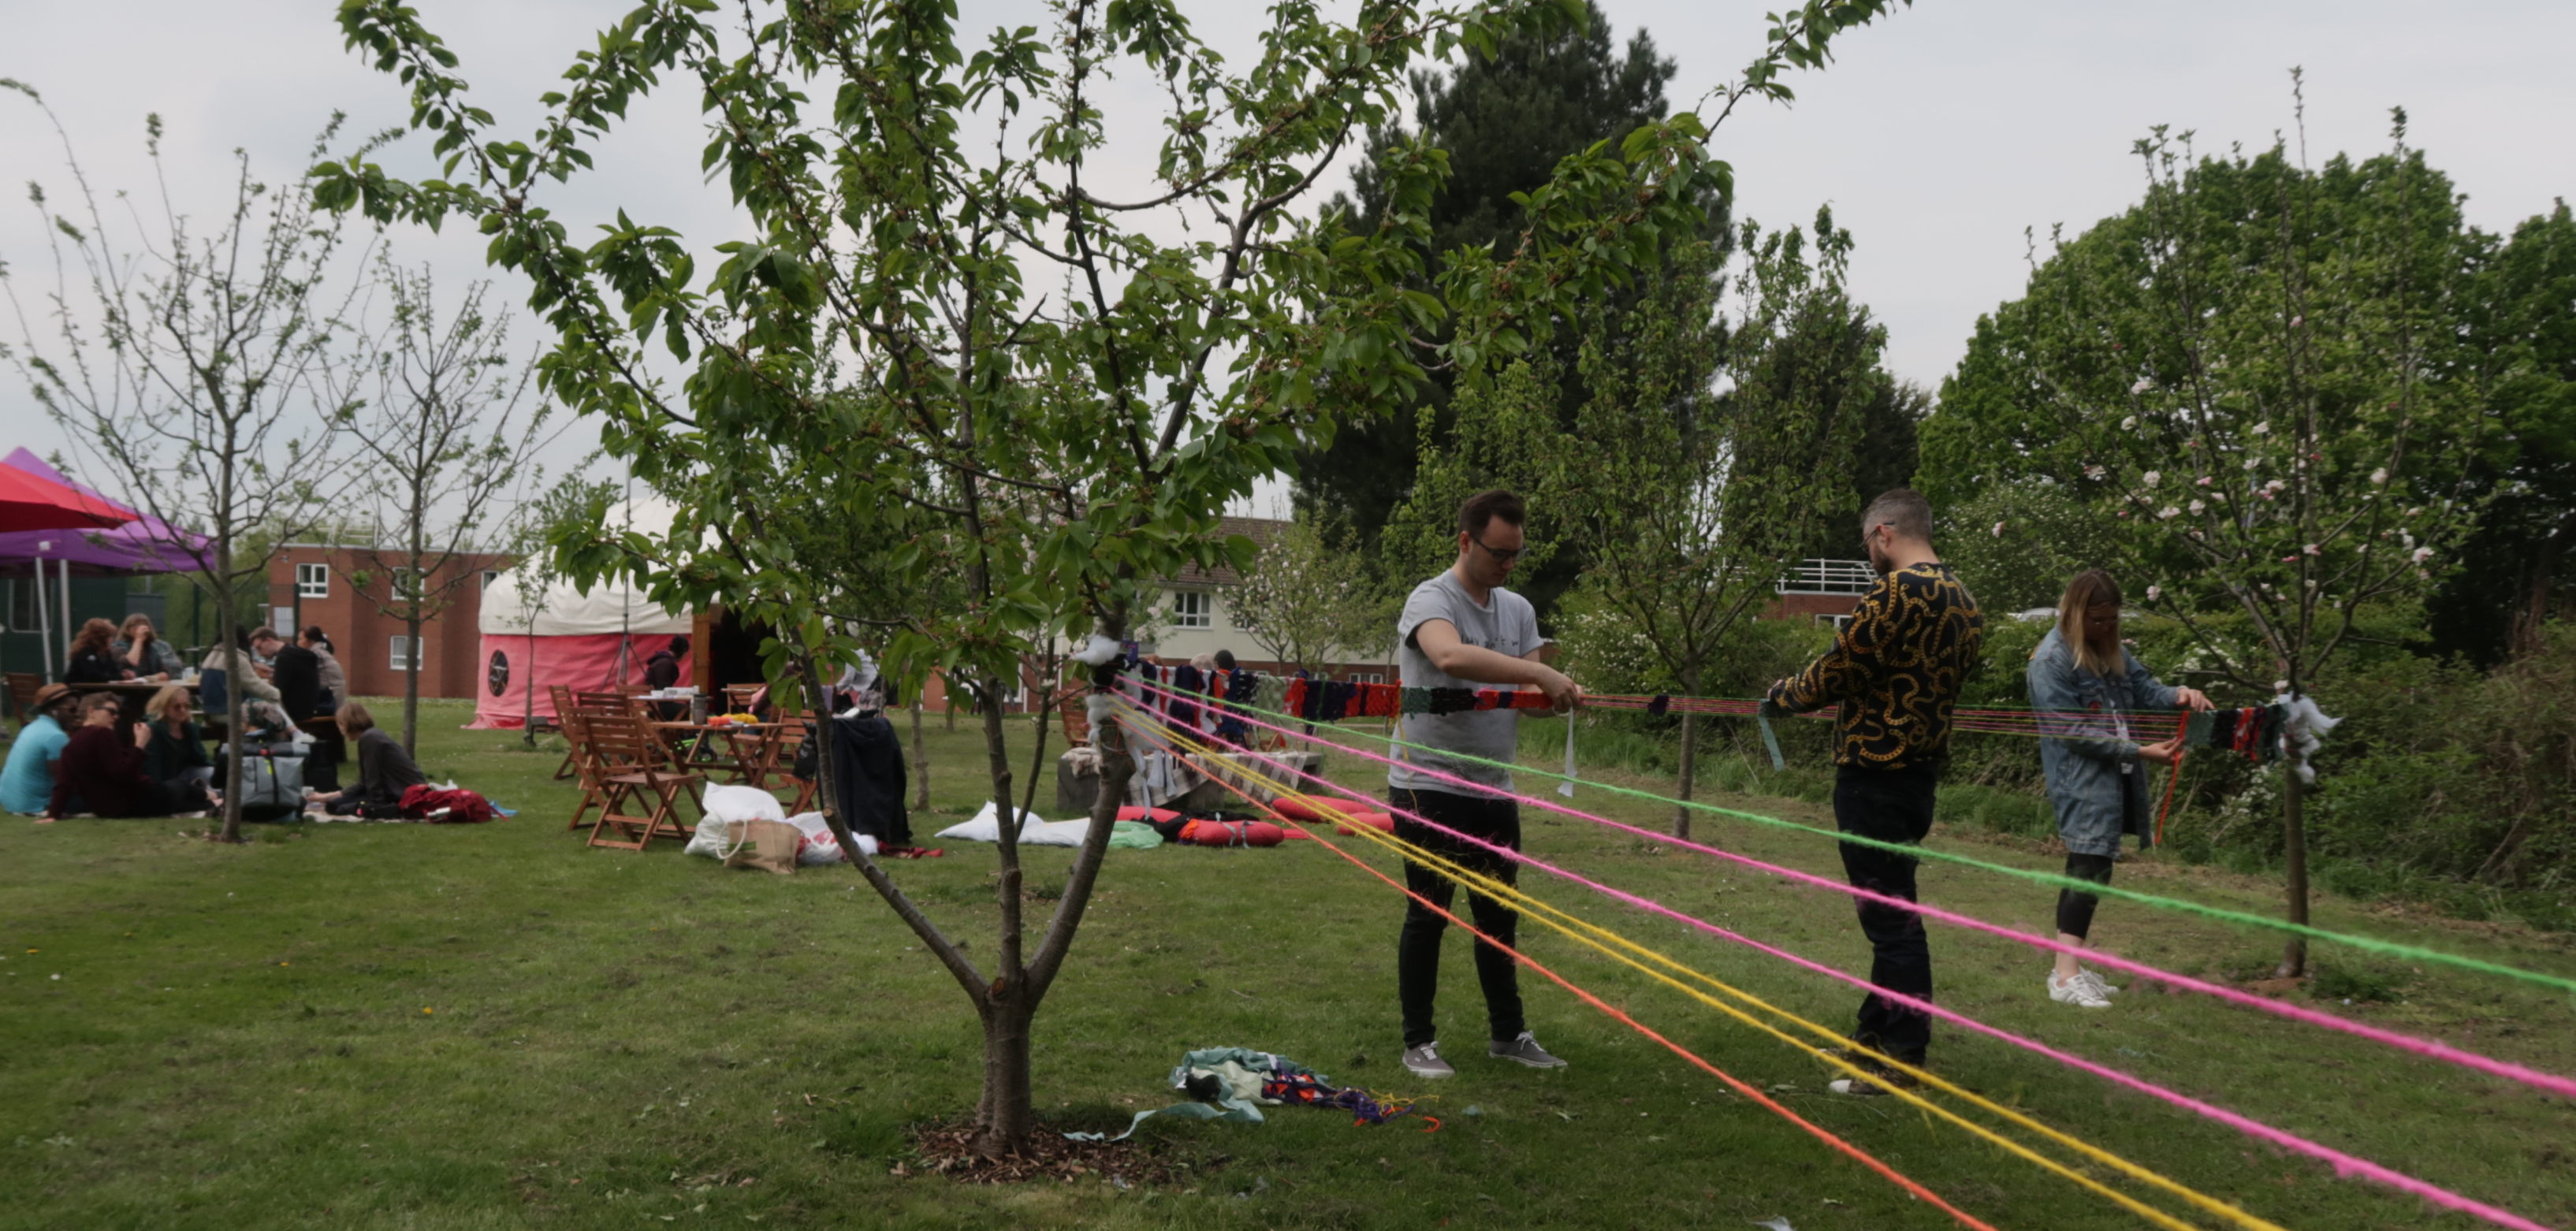 People engaged in activities: they are attaching coloured pieces of string to young trees in a green area